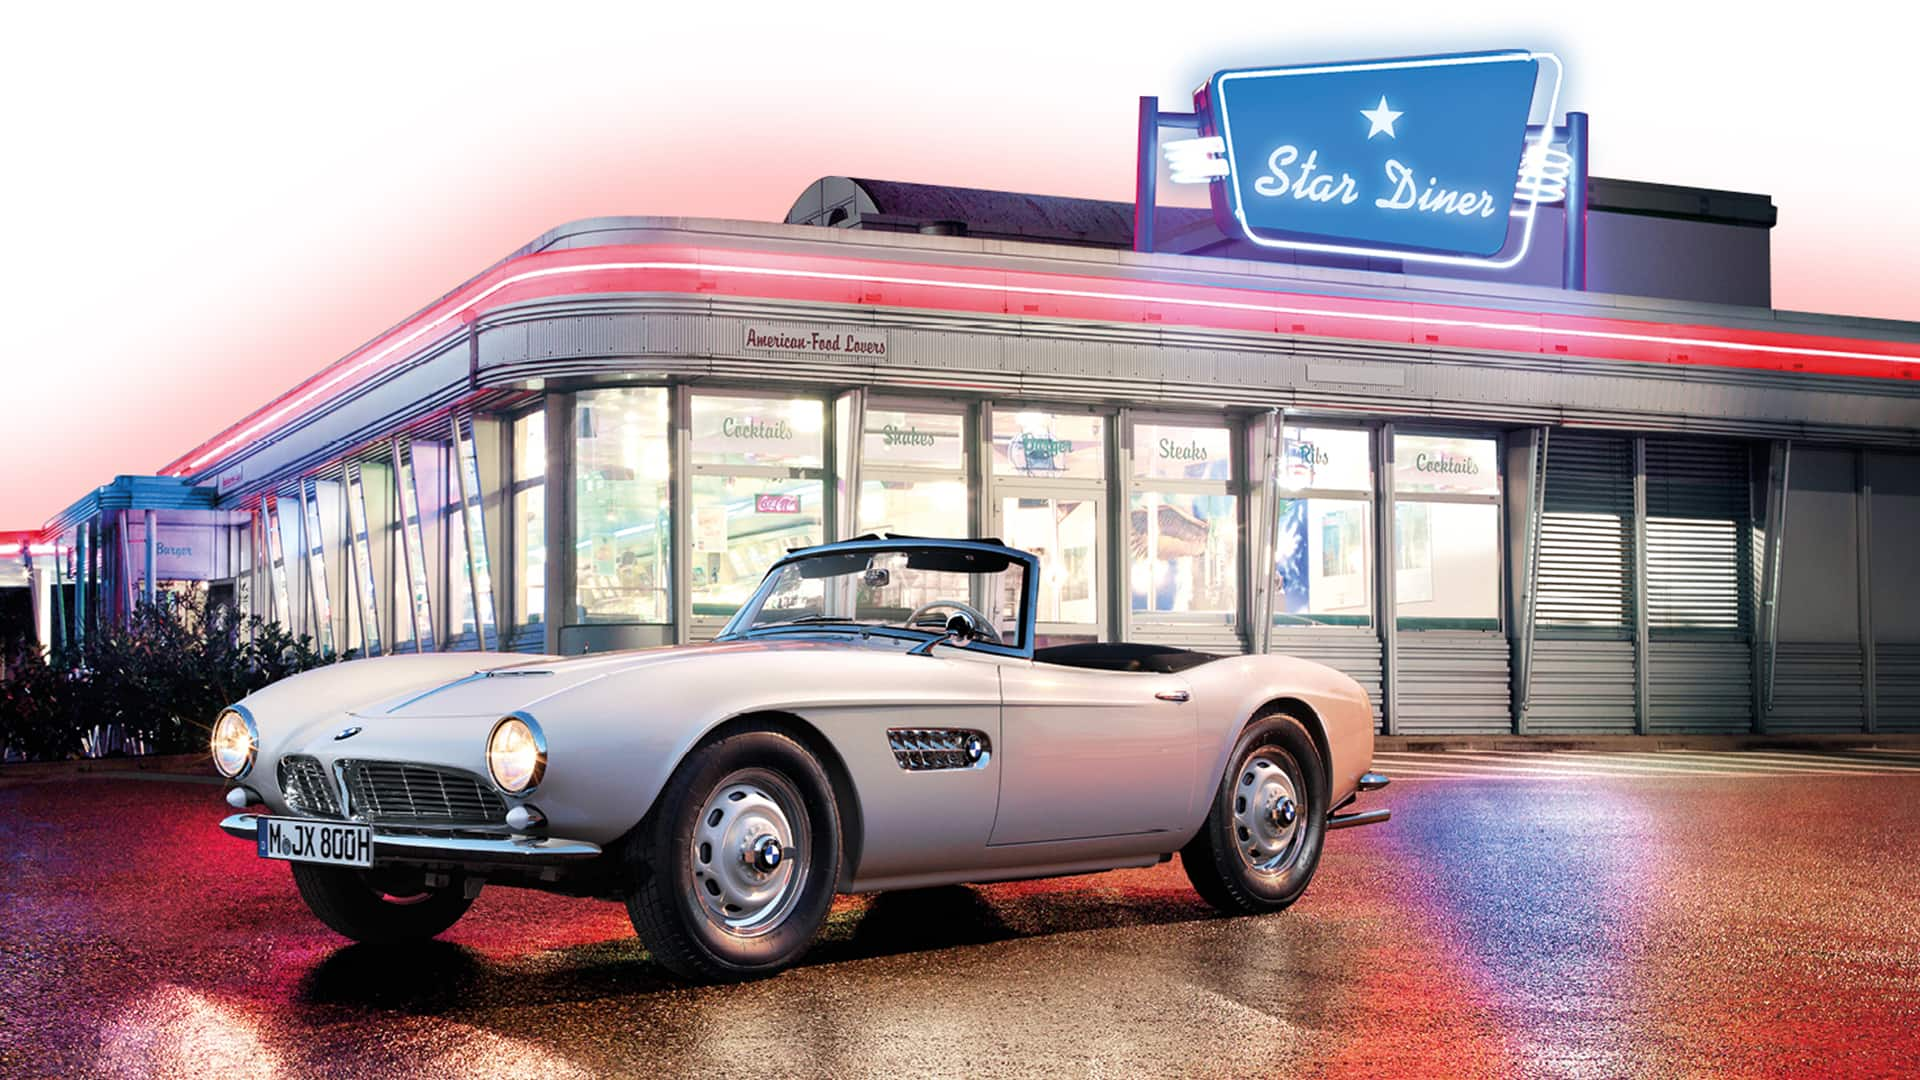 Restored Elvis BMW 507 in front of a diner